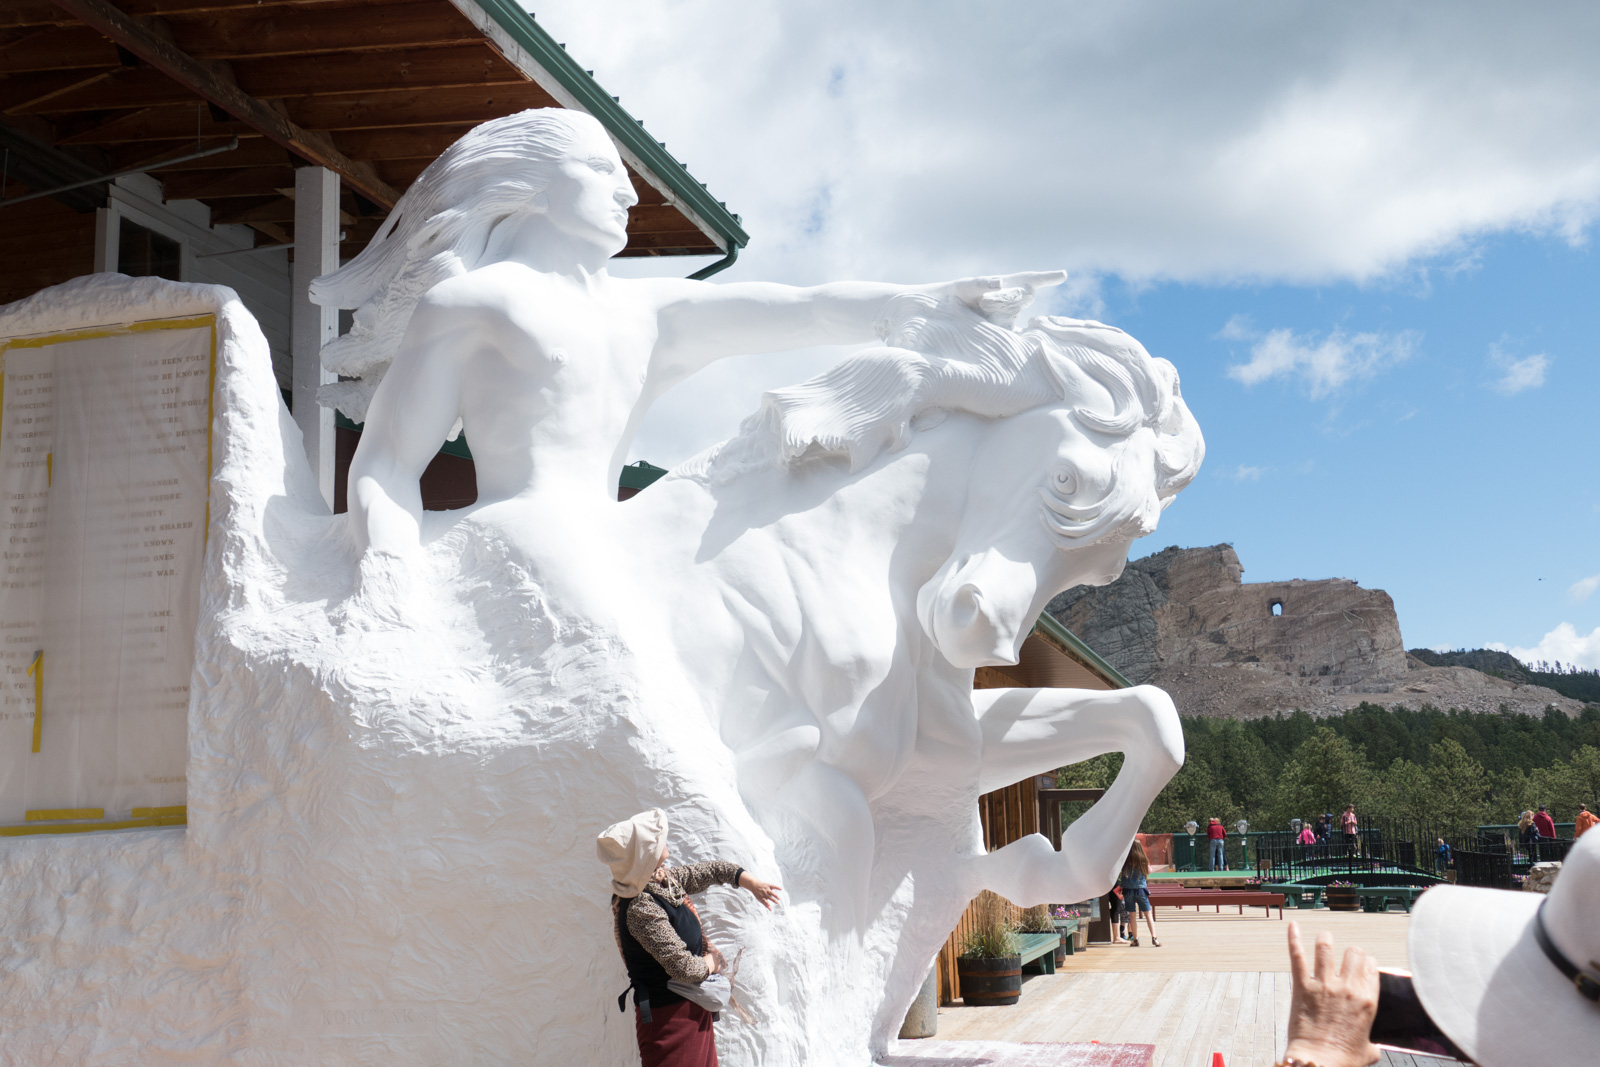 The model of the Crazy Horse Memorial statue in the foreground with the work in progress in the background.